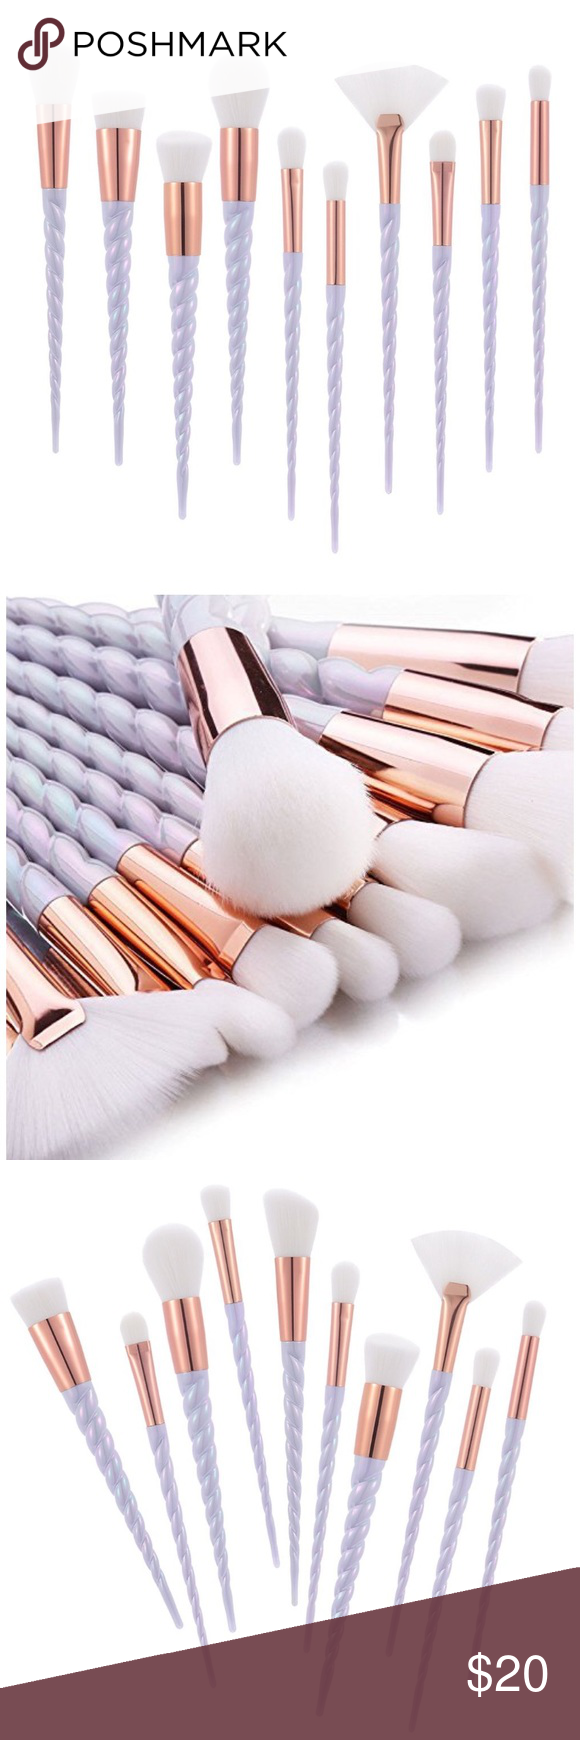 Pearl Unicorn Makeup Brushes Boutique Unicorn makeup